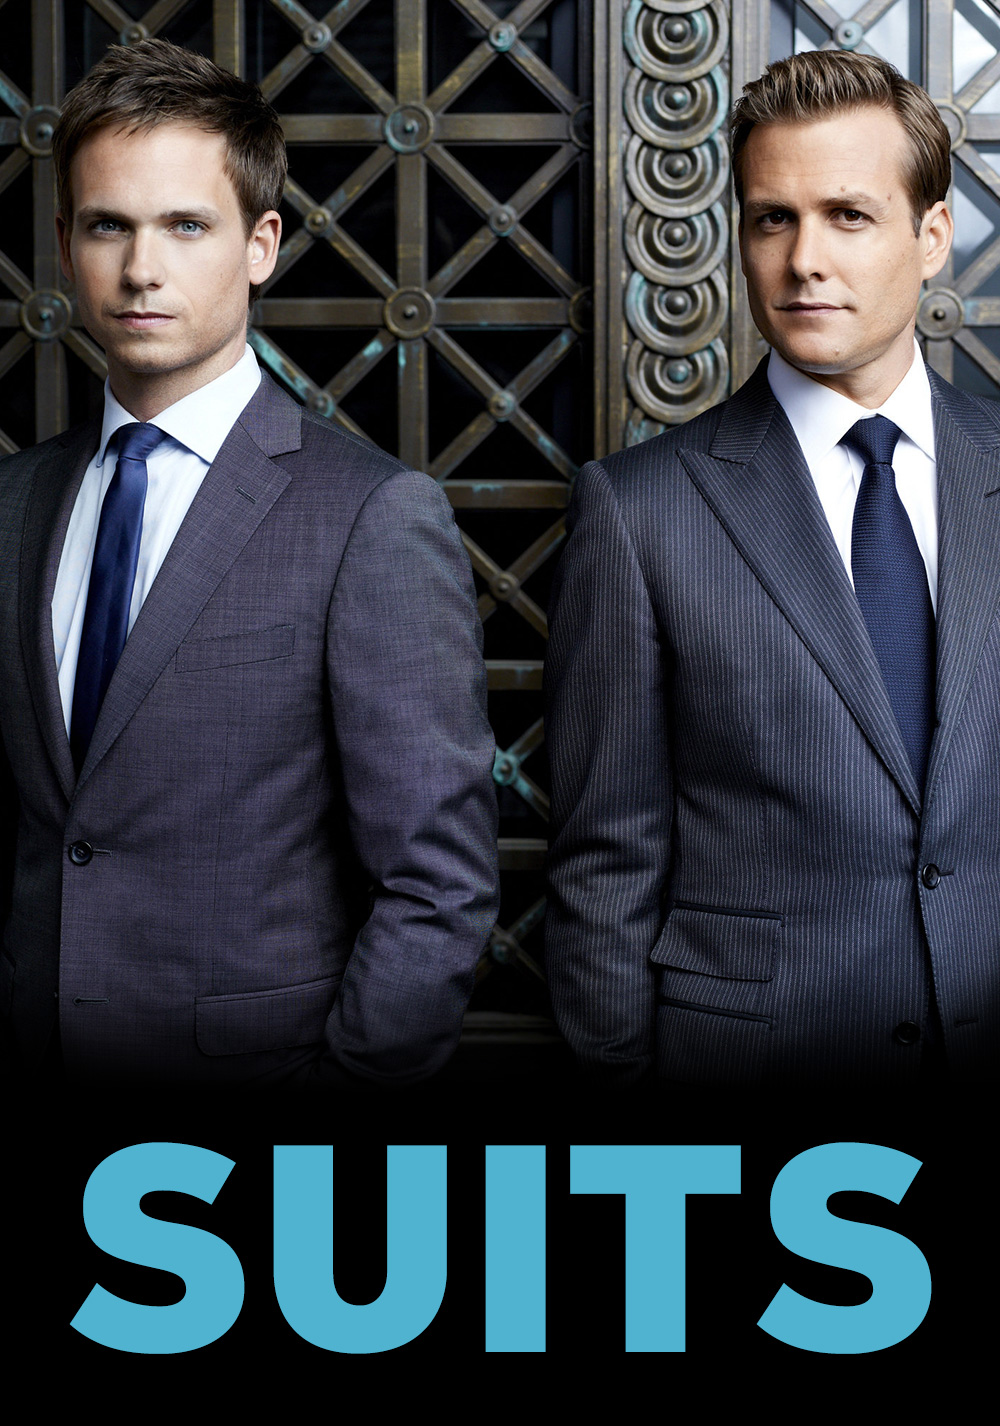 suits-52b60286a3ee1